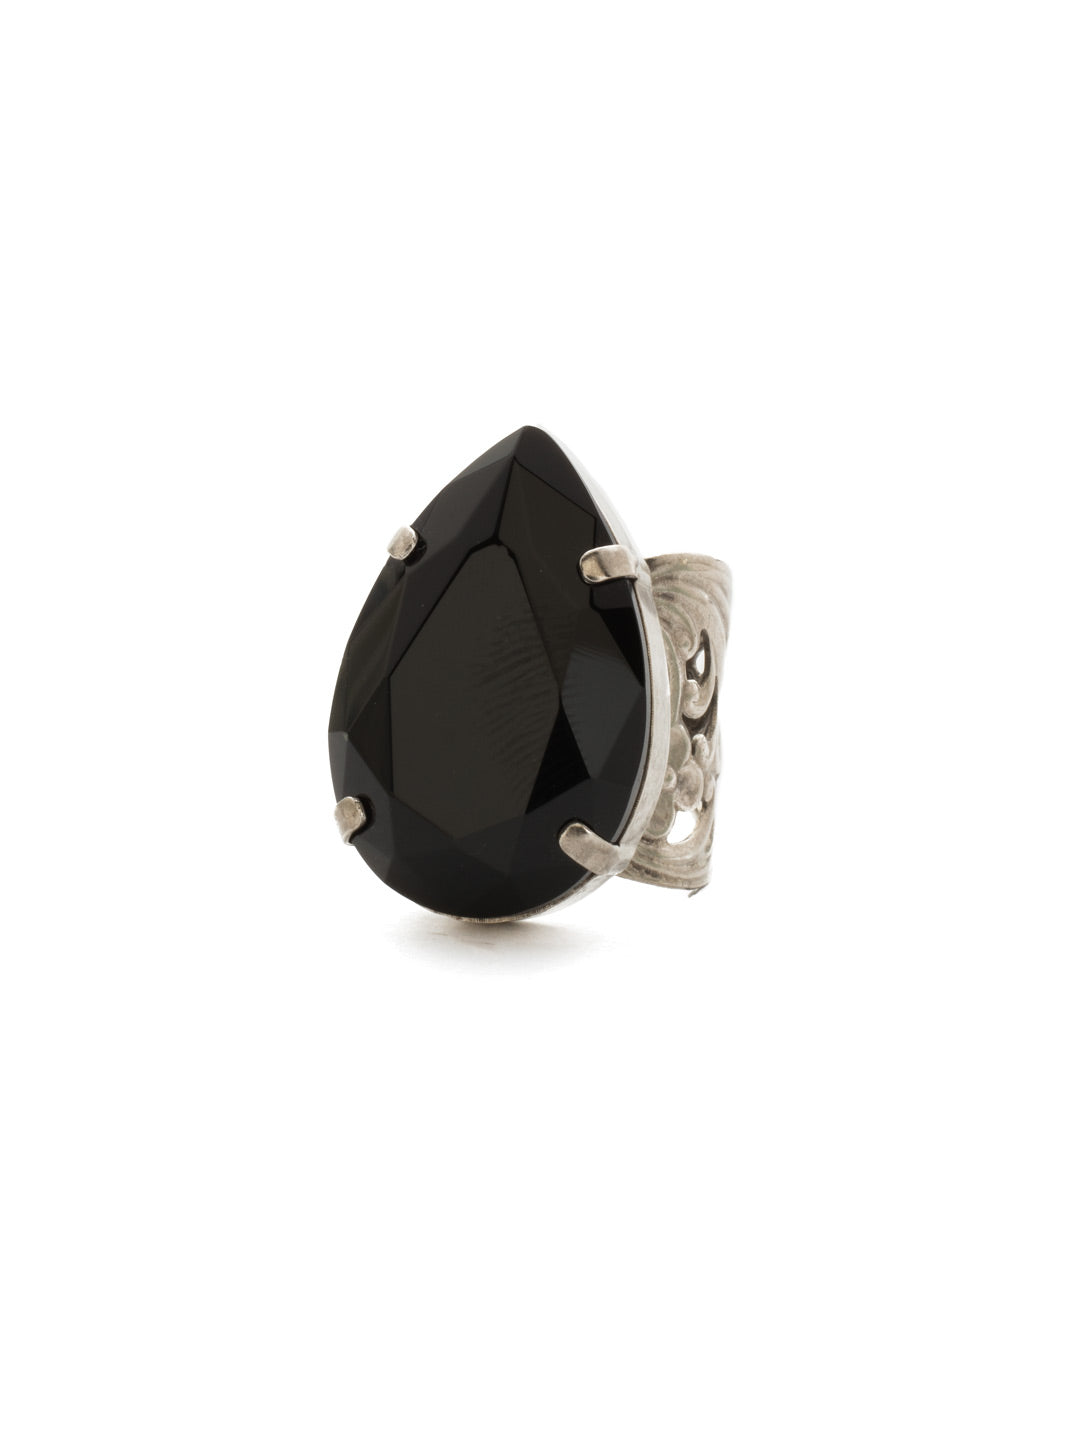 Teardrop Crystal Ring - RCM25ASBON